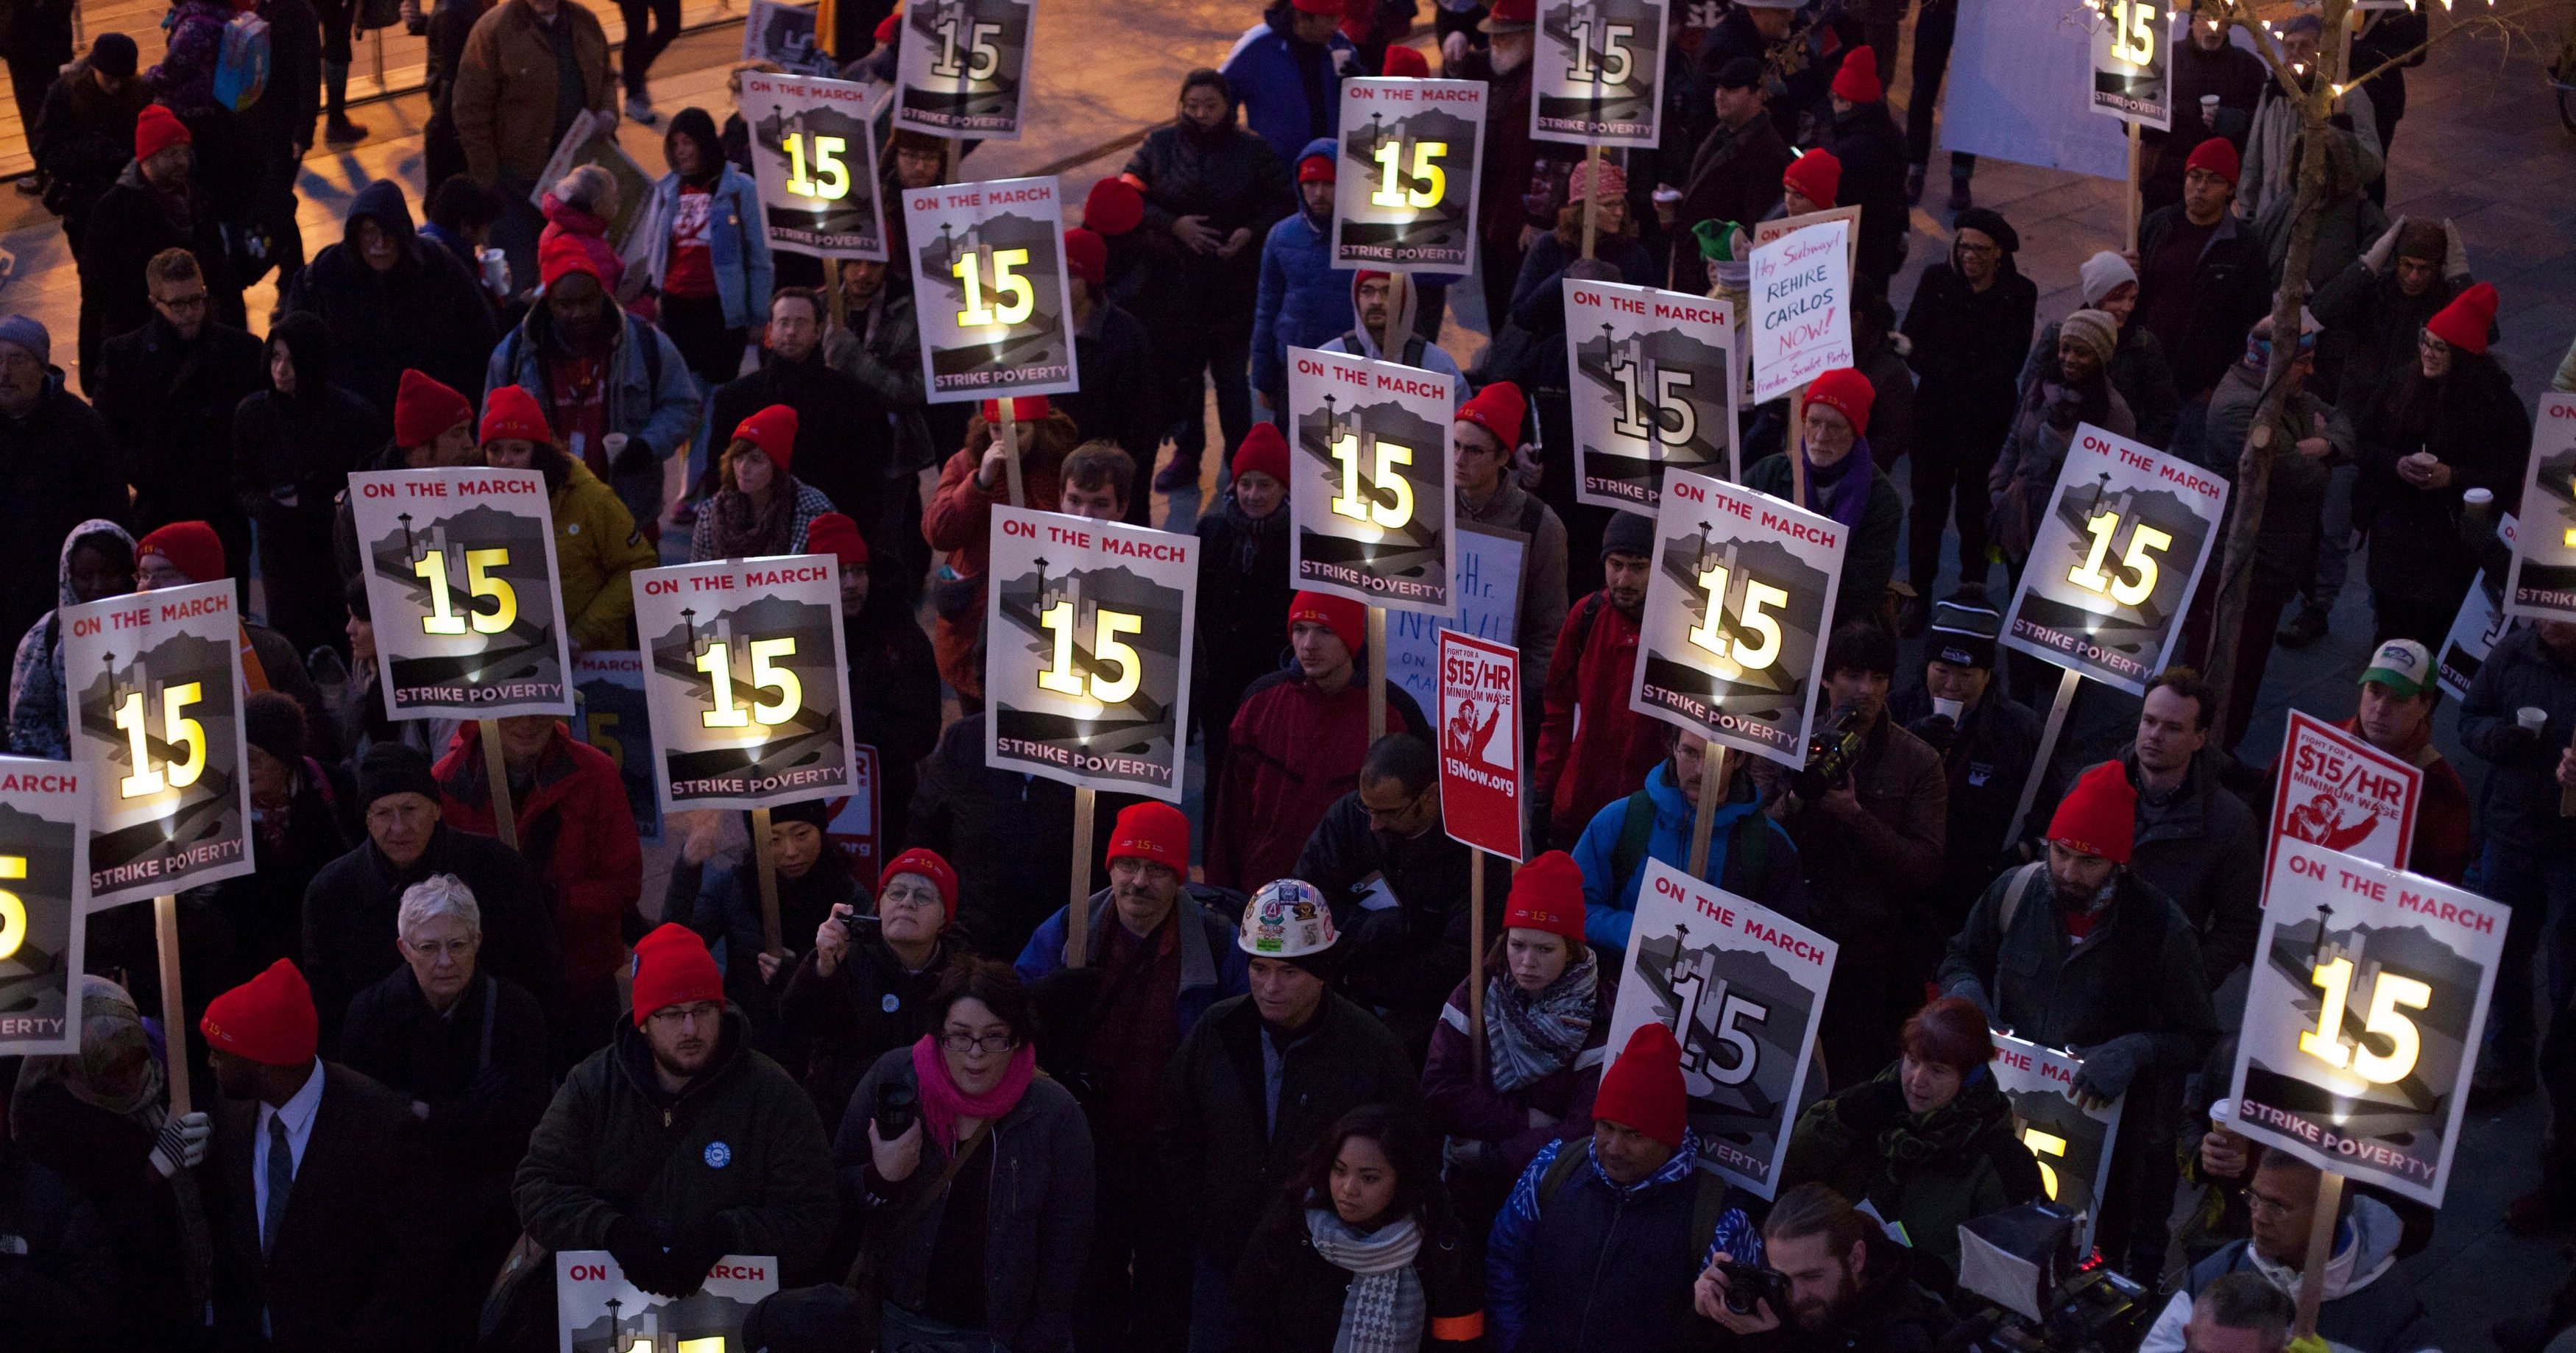 Demonstrators rally to raise the hourly minimum wage to US$15 for fast-food workers.